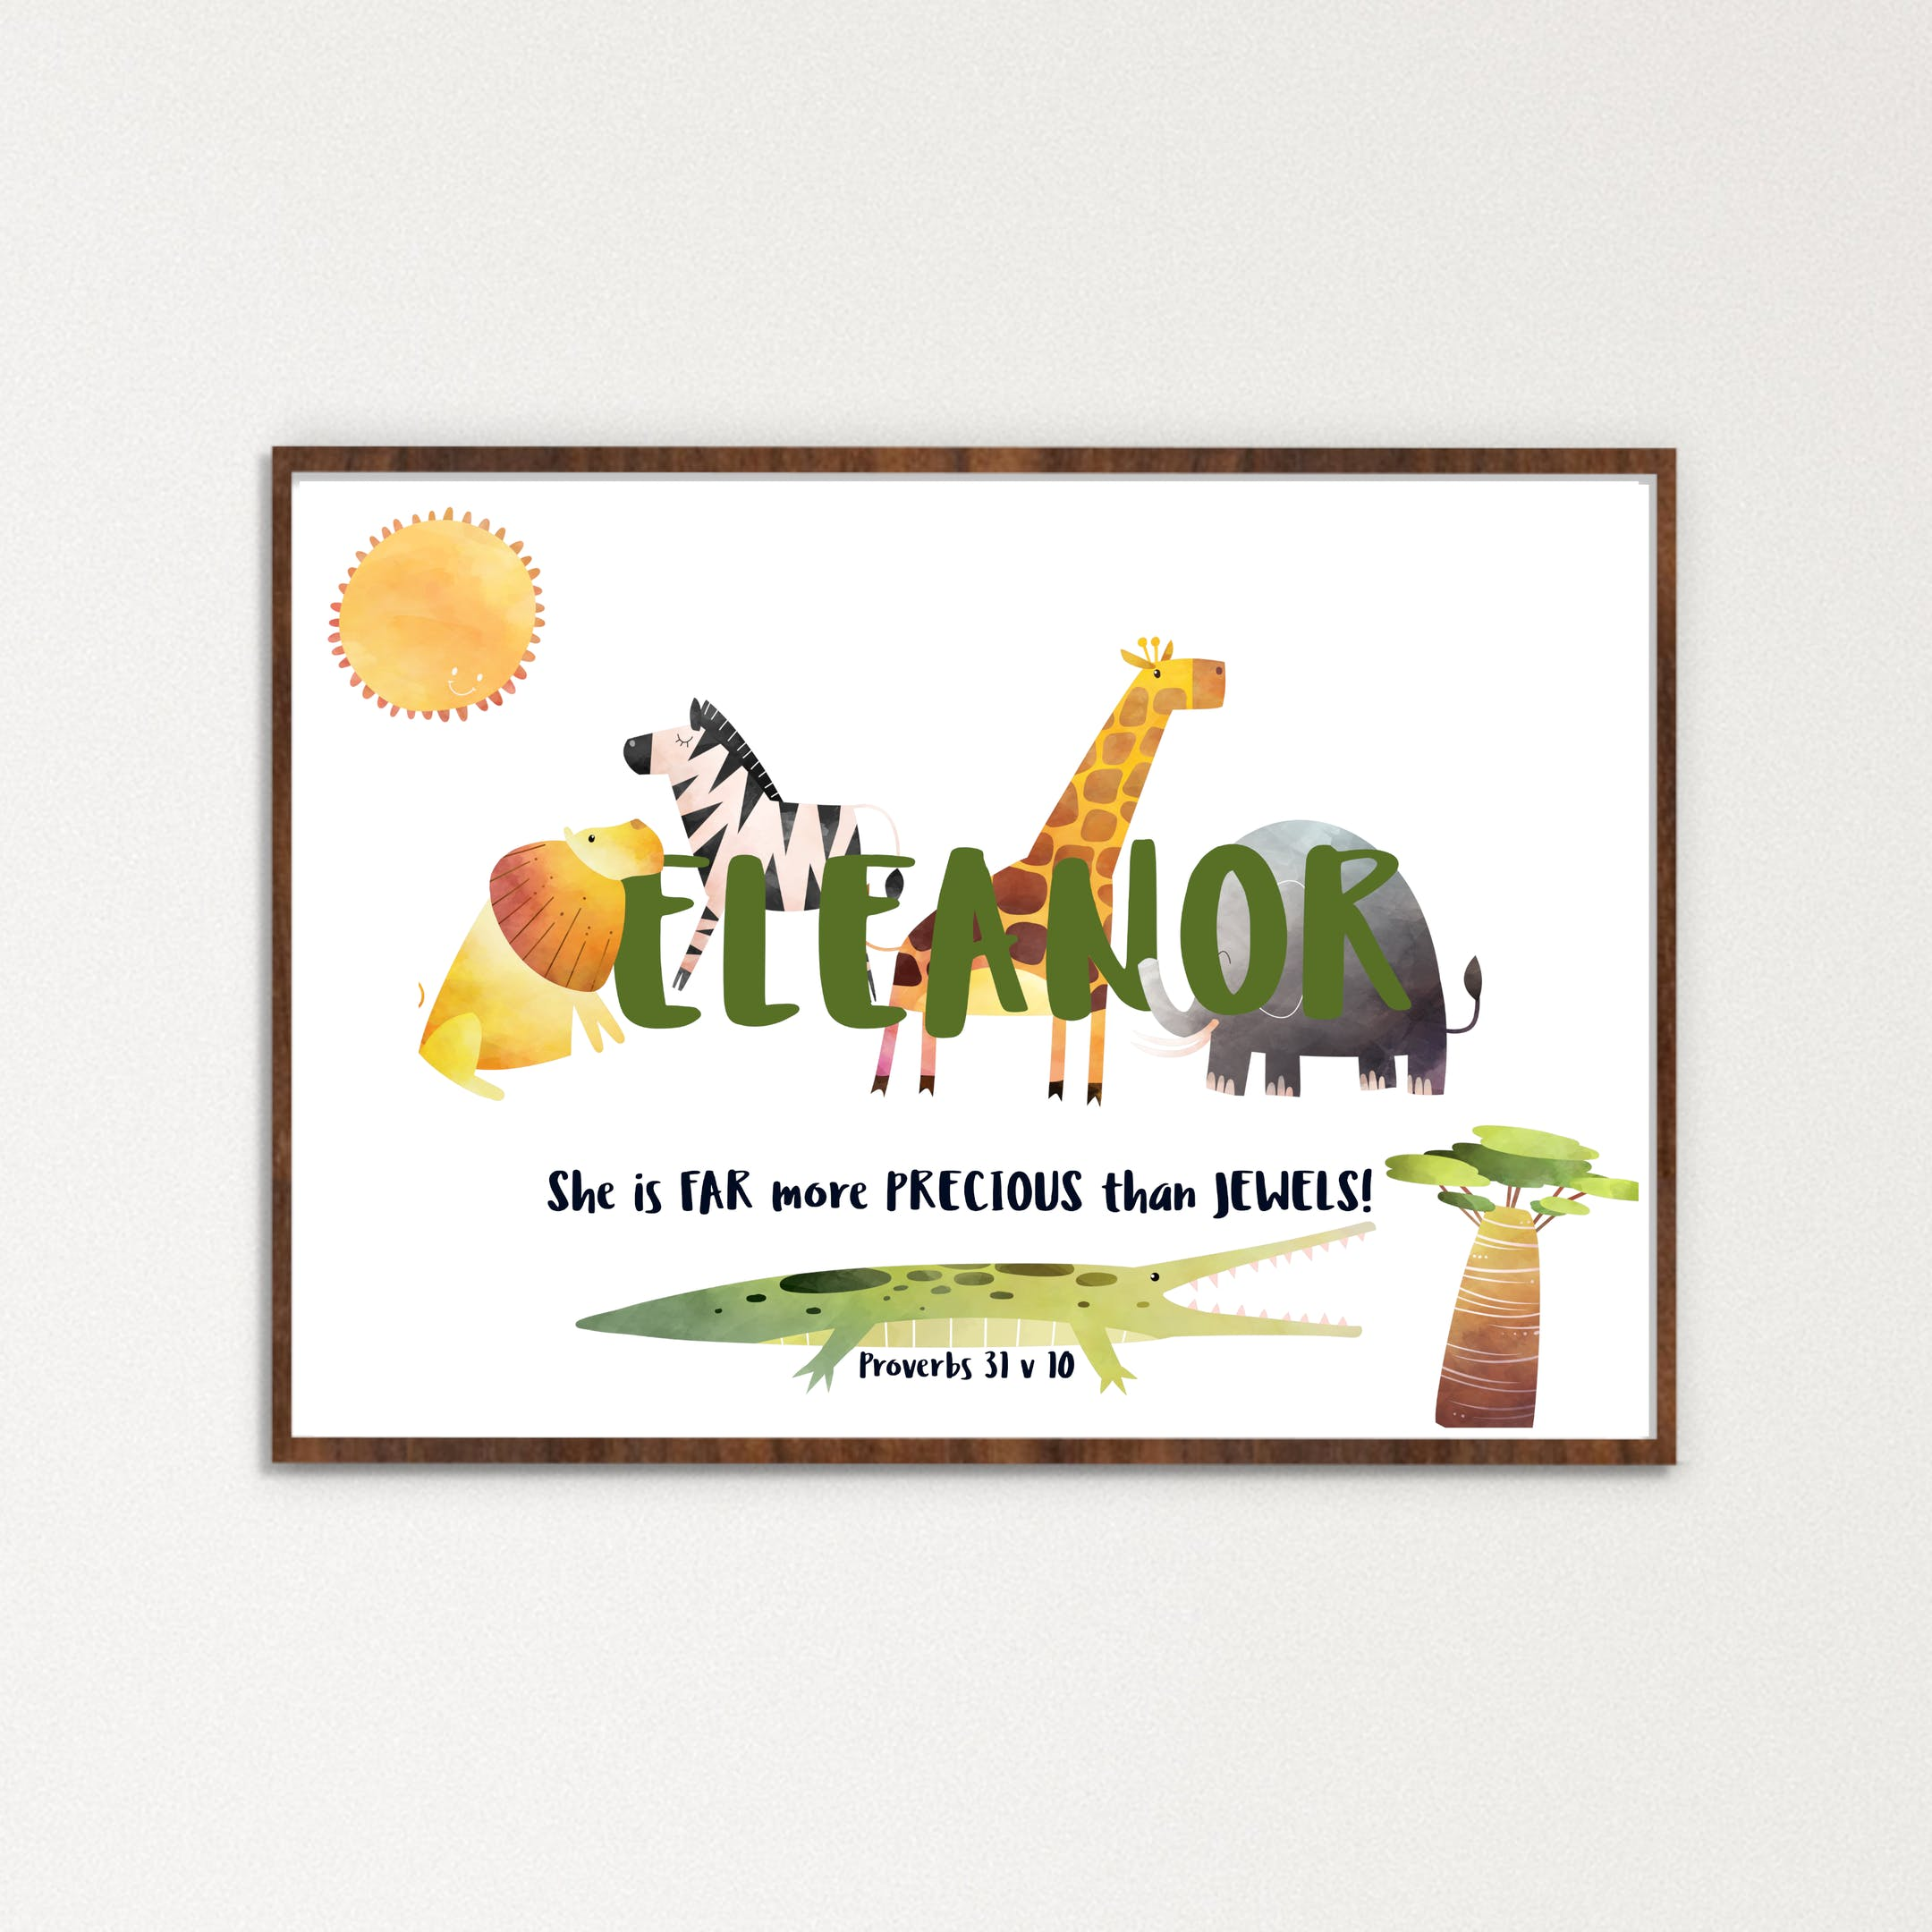 Name Eleanor in centre with safari animals behind | Personalised Print by Alpha Letterbox at Cheerfully Given - Christian Prints UK